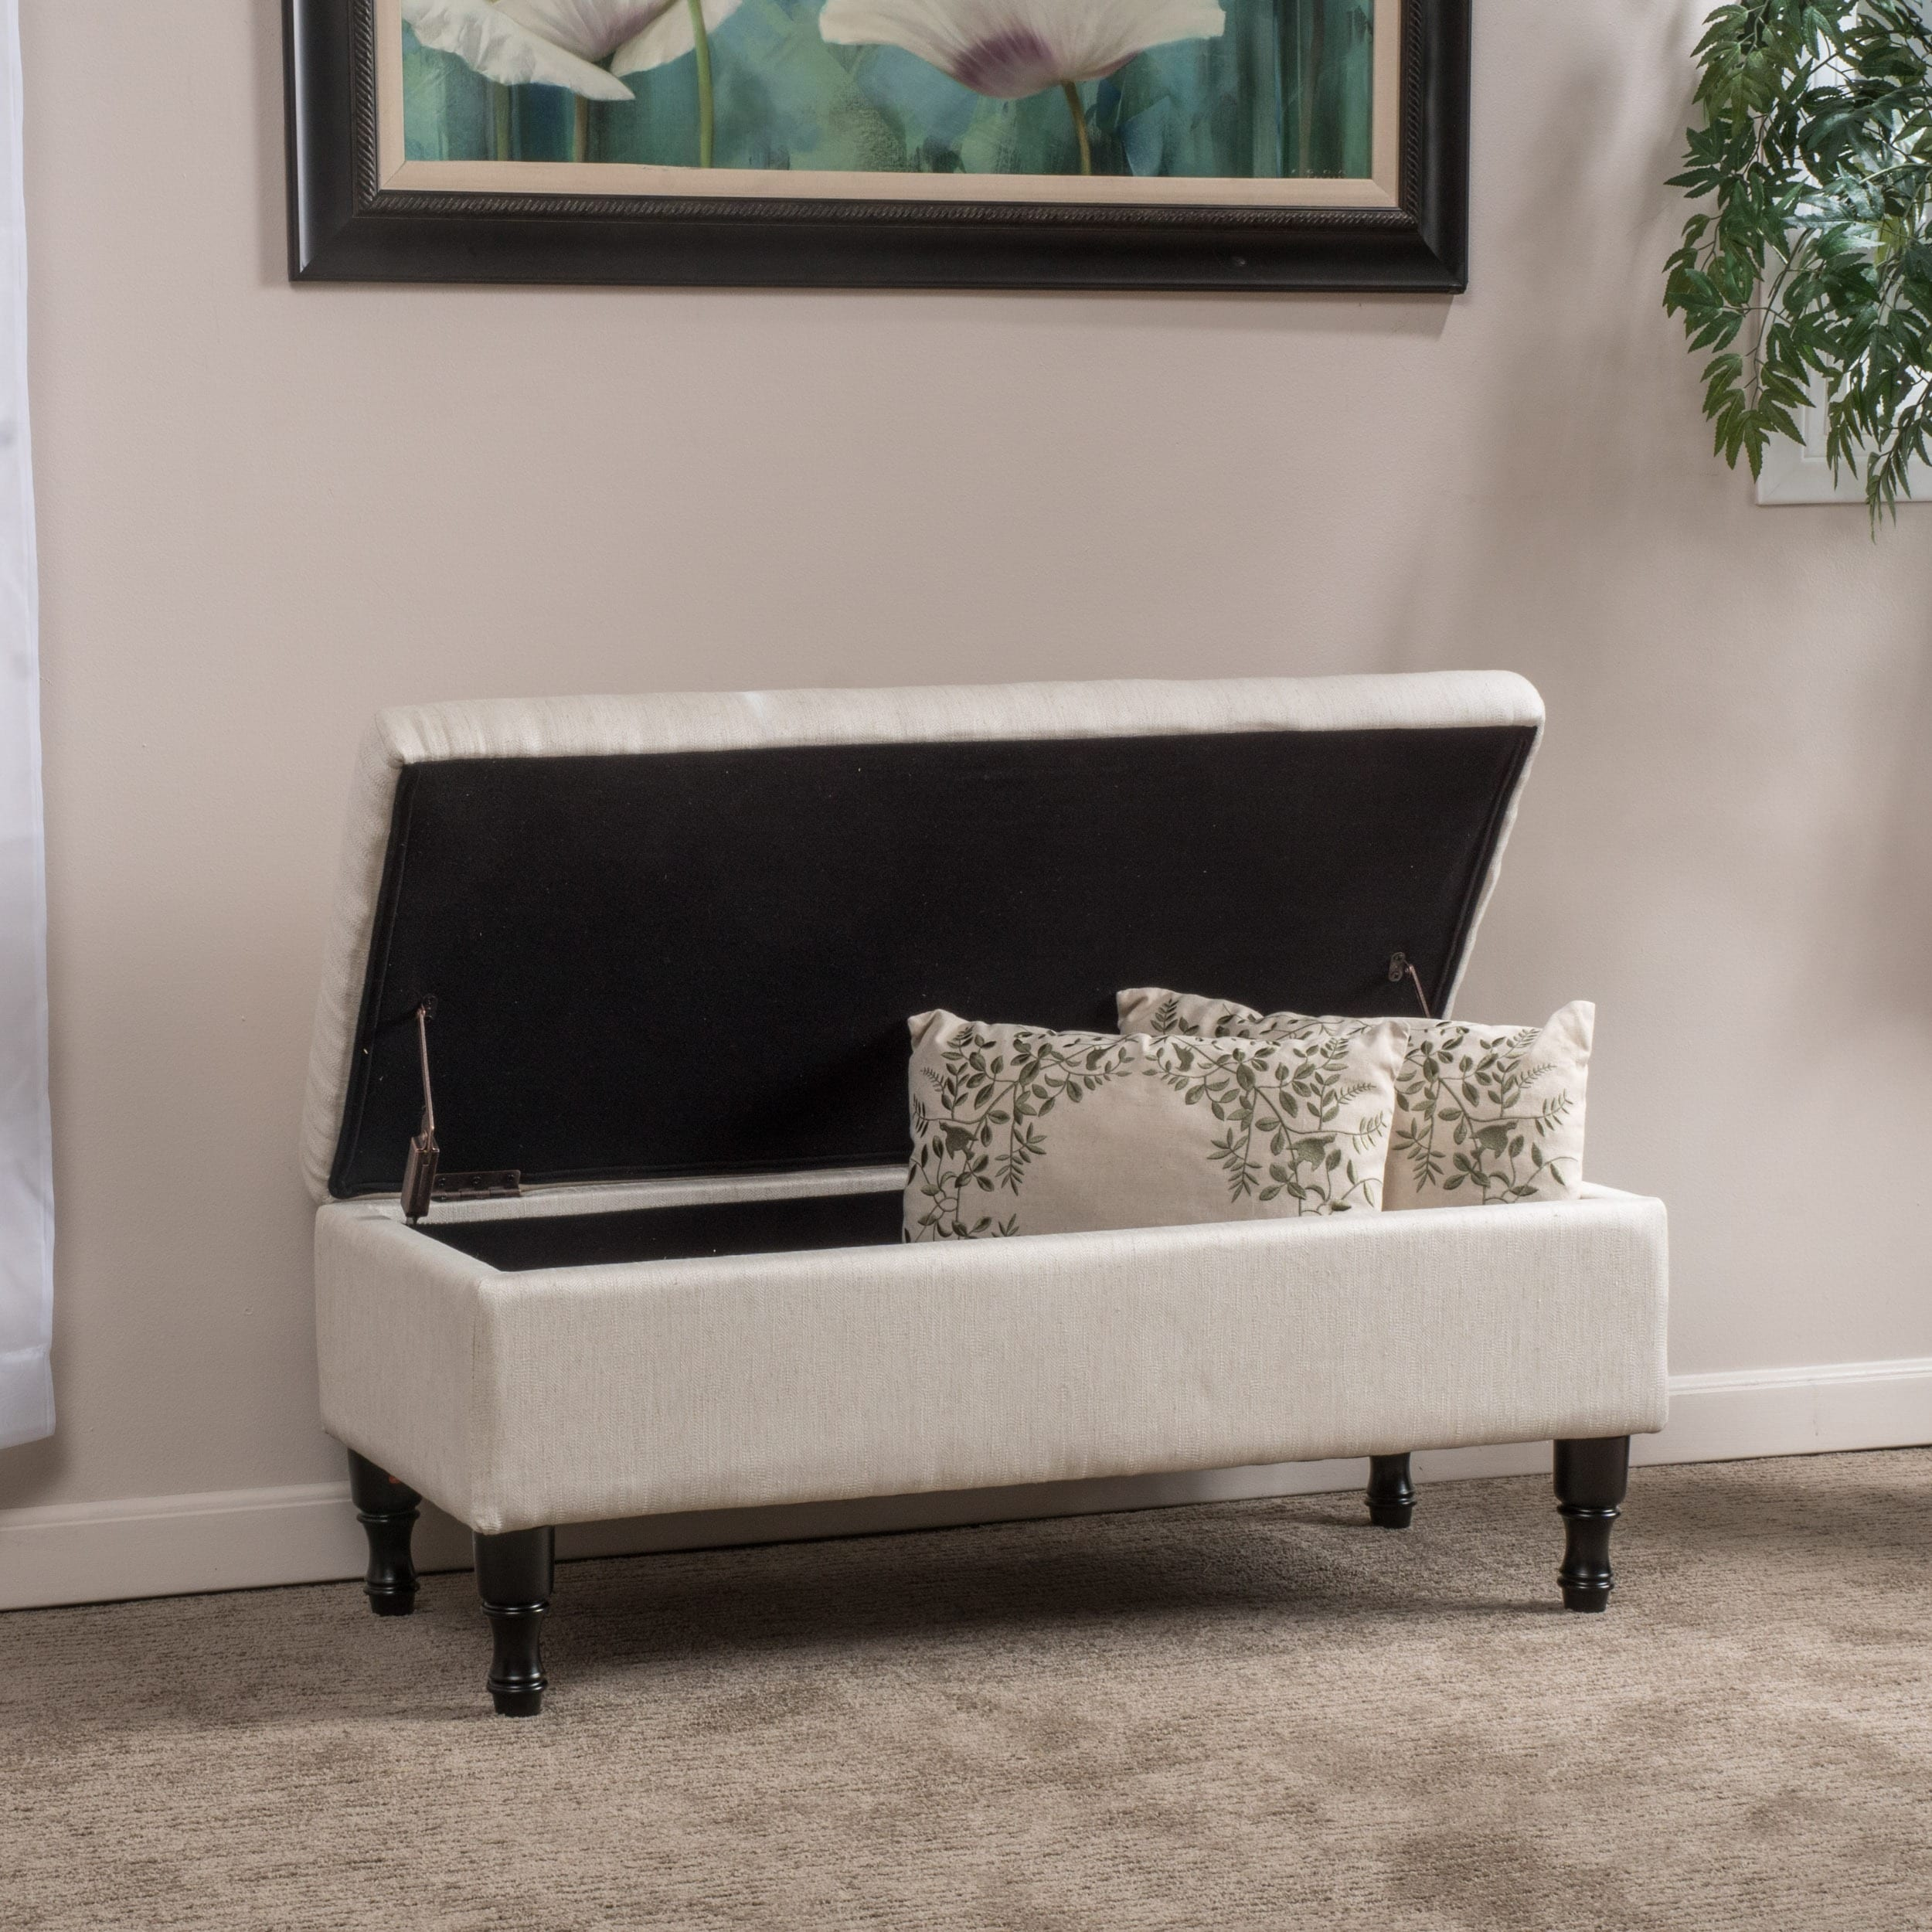 Coffee Table Fabric Storage: Fabric Ottoman Storage Foot Rest Coffee Table Padded Grey